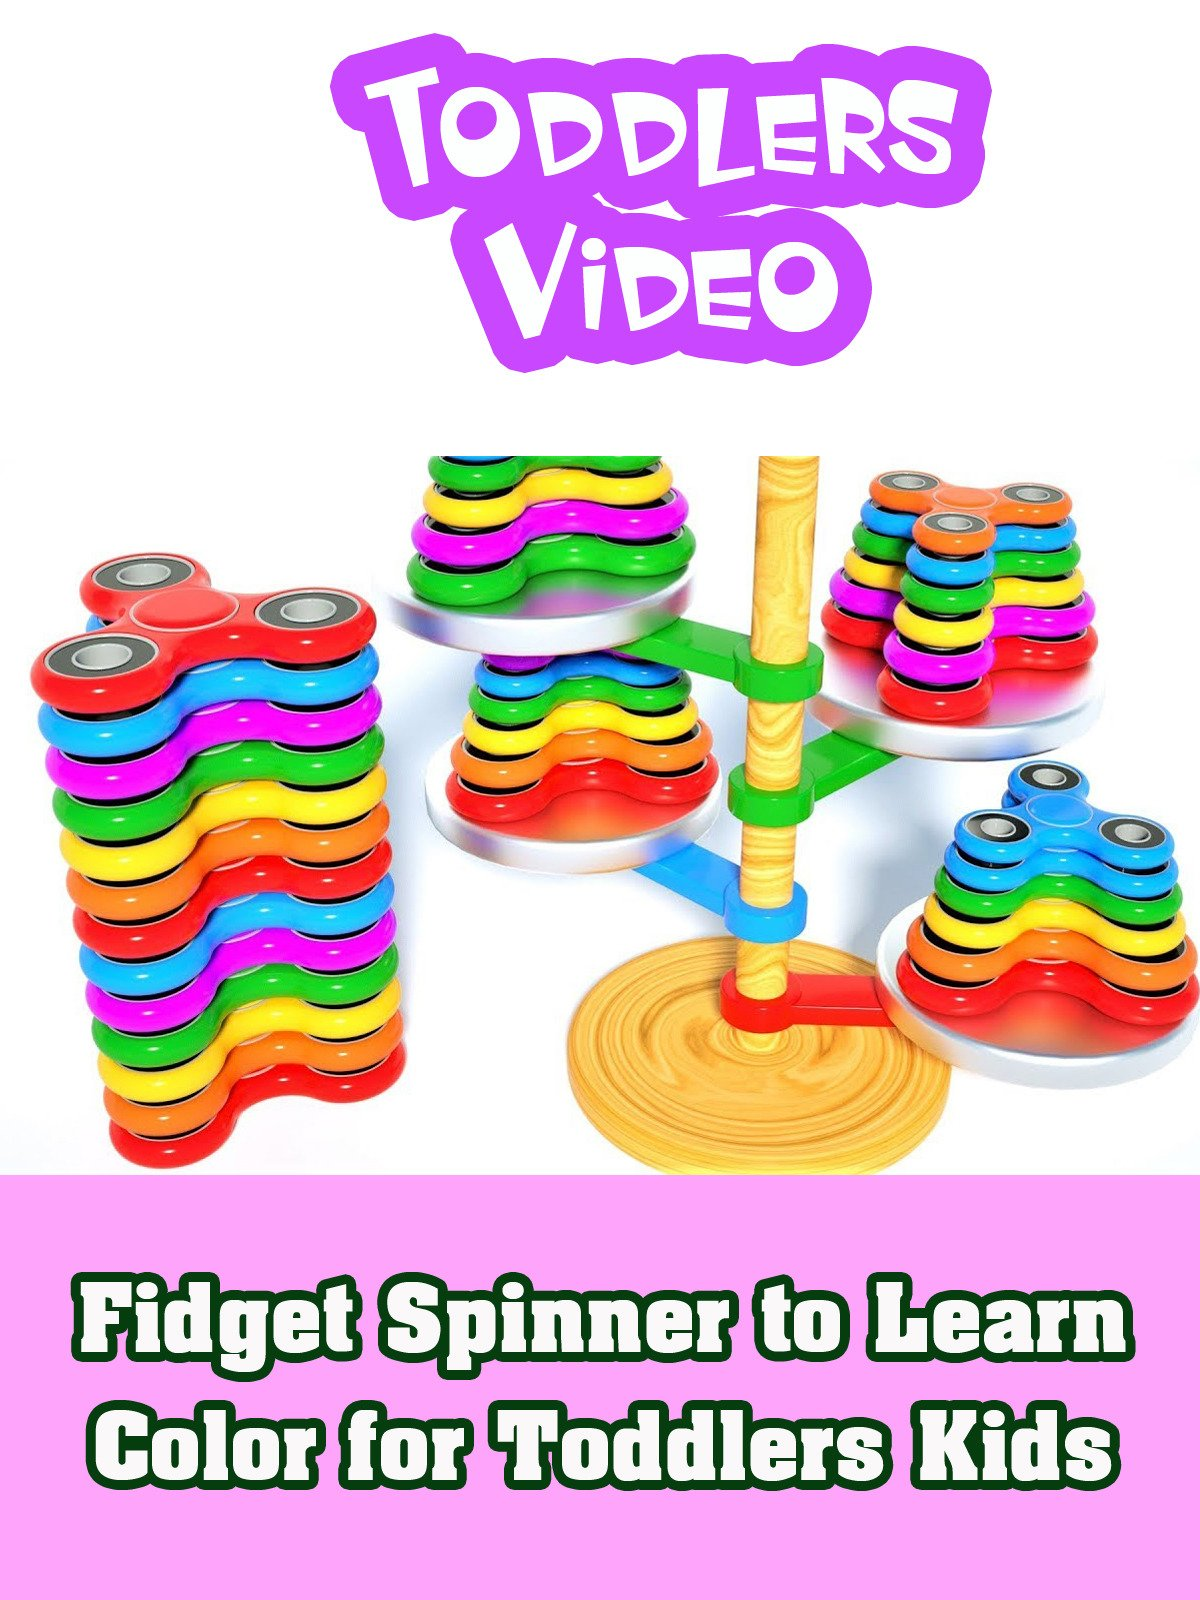 Fidget Spinner to Learn Color for Toddlers Kids